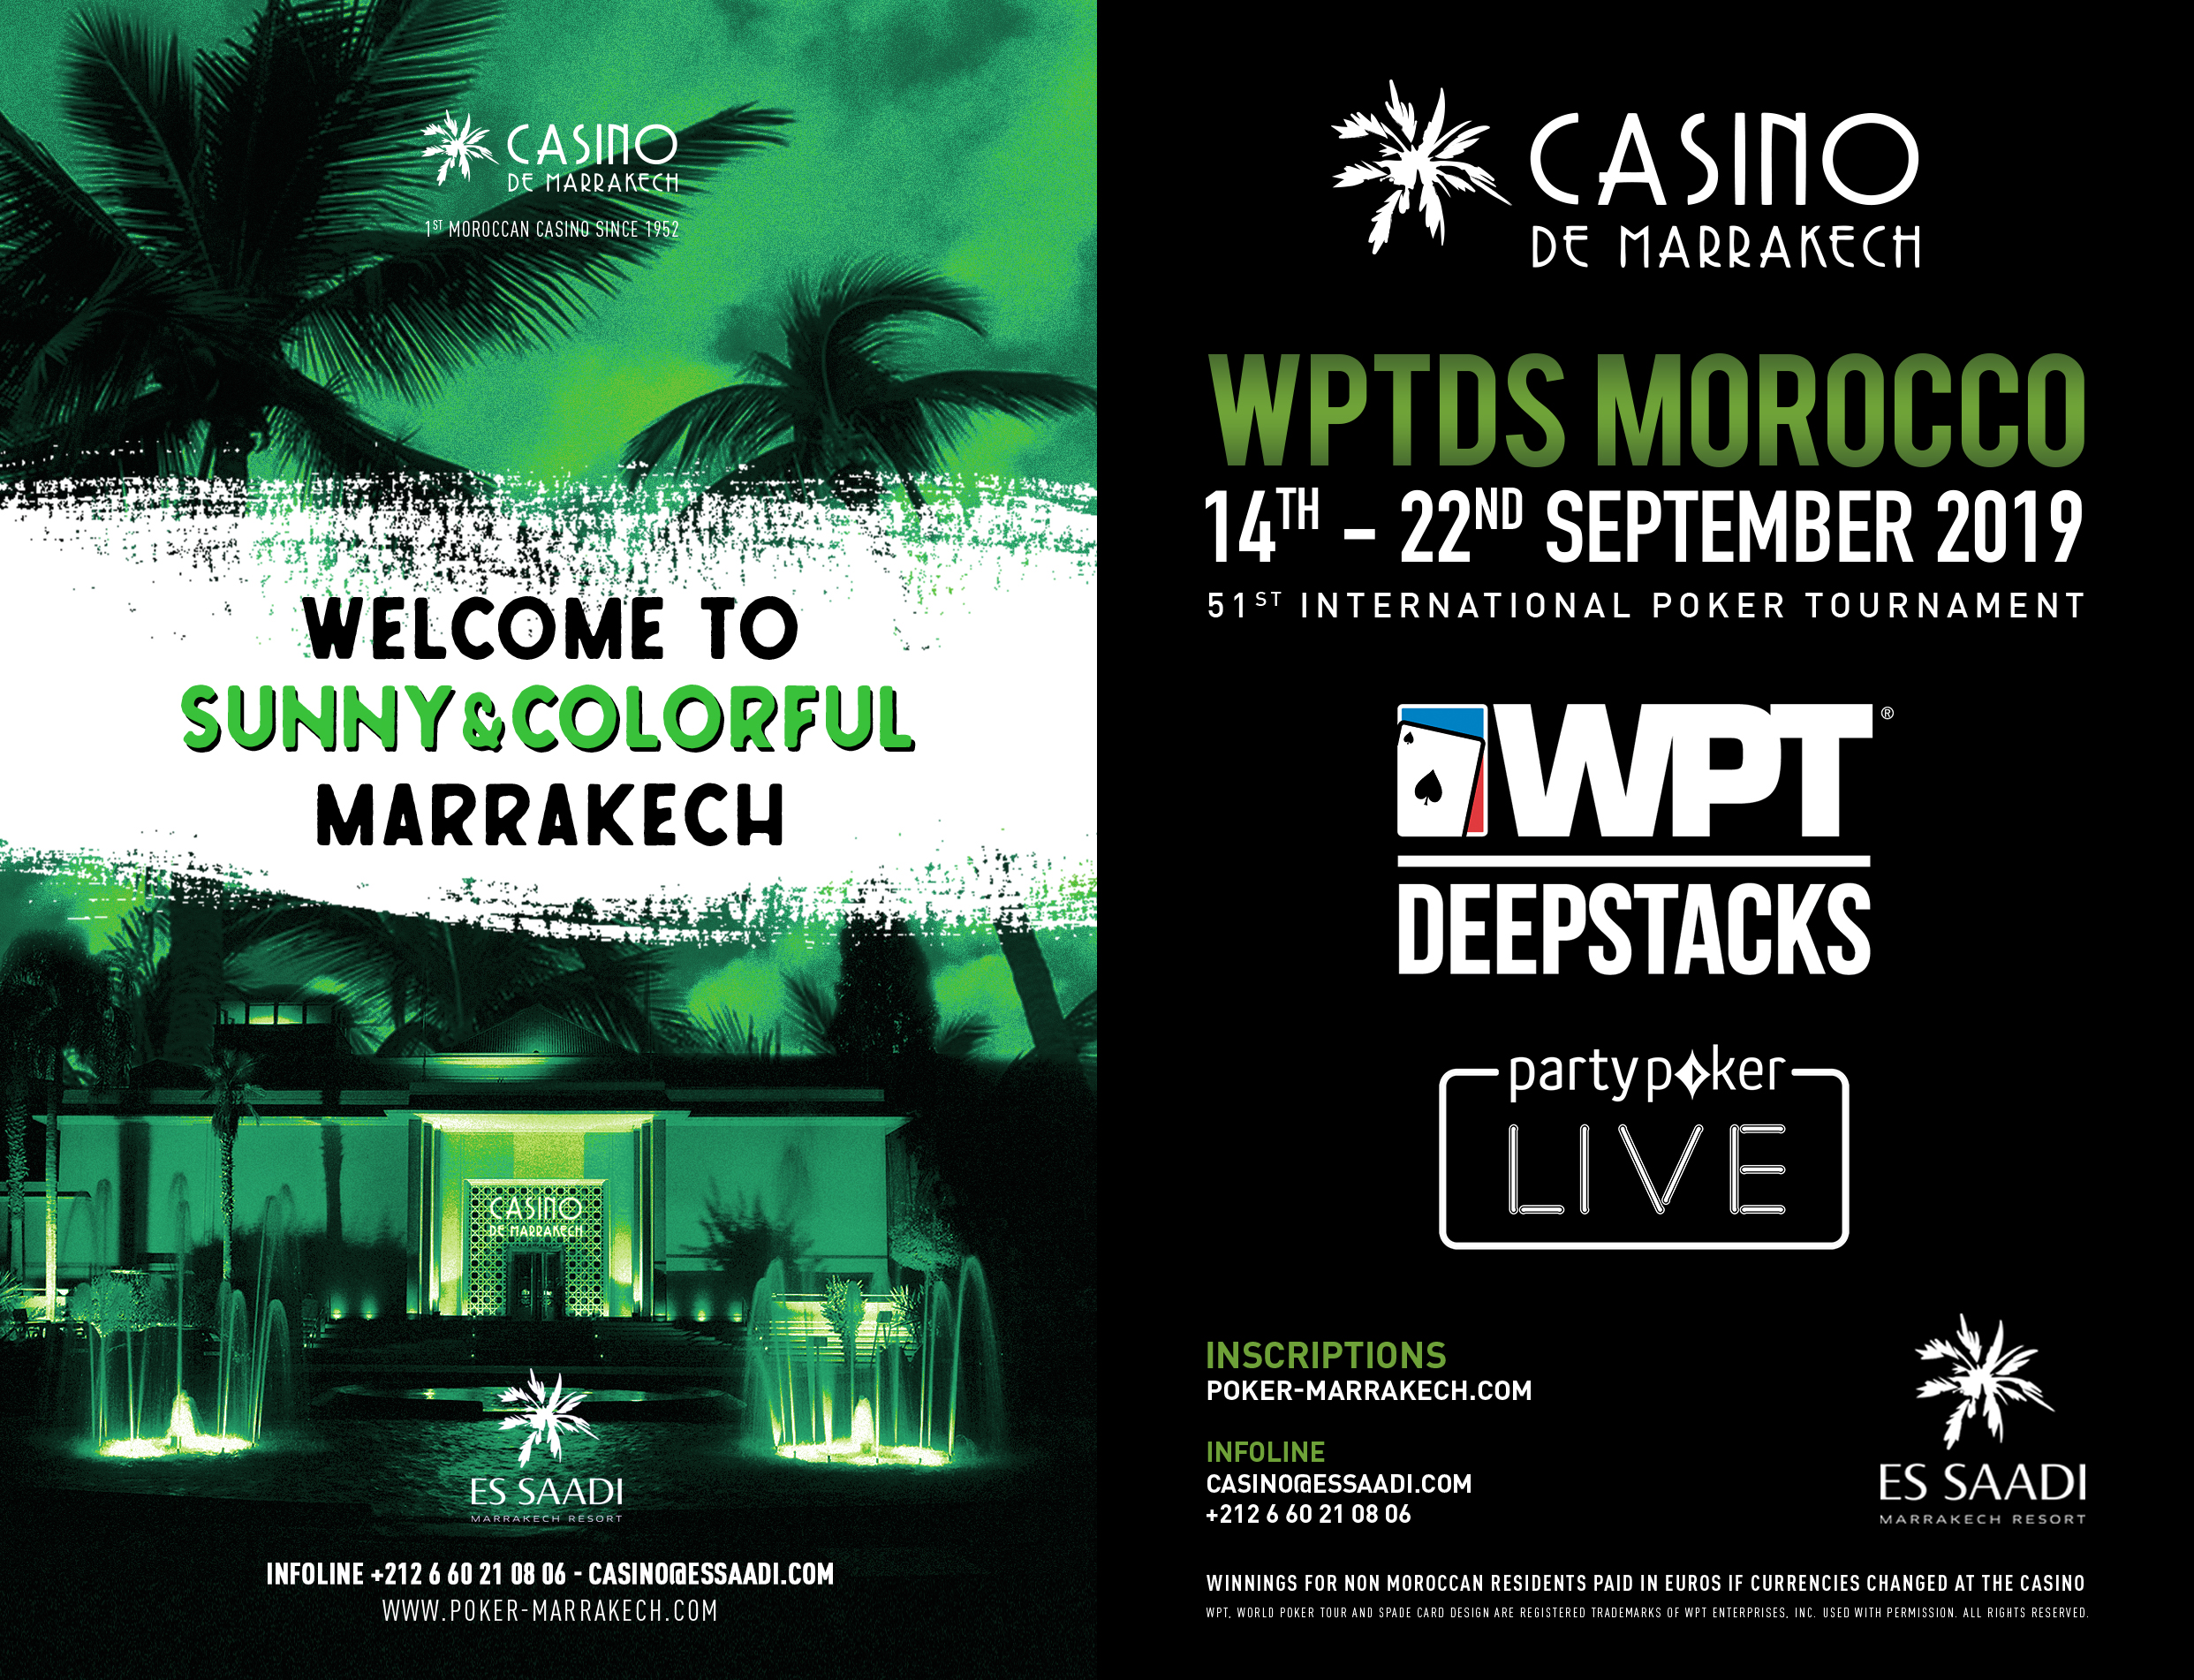 WPTDS MARRAKECH 2019 – 51st international poker tournamen